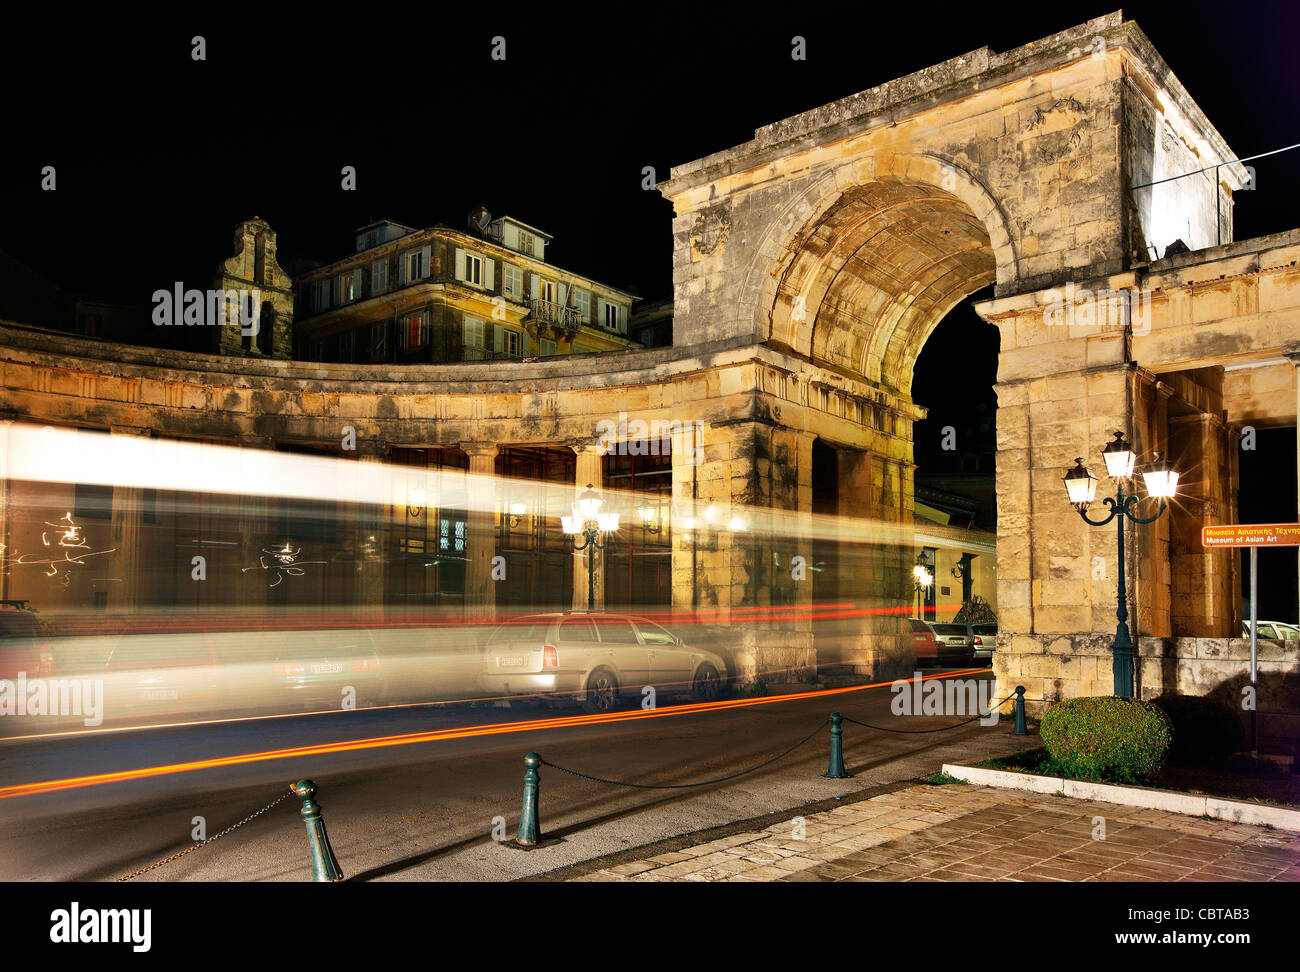 A bus passing through St George's gate at the palace of Saints George and Michael, Corfu town, Corfu island, - Stock Image